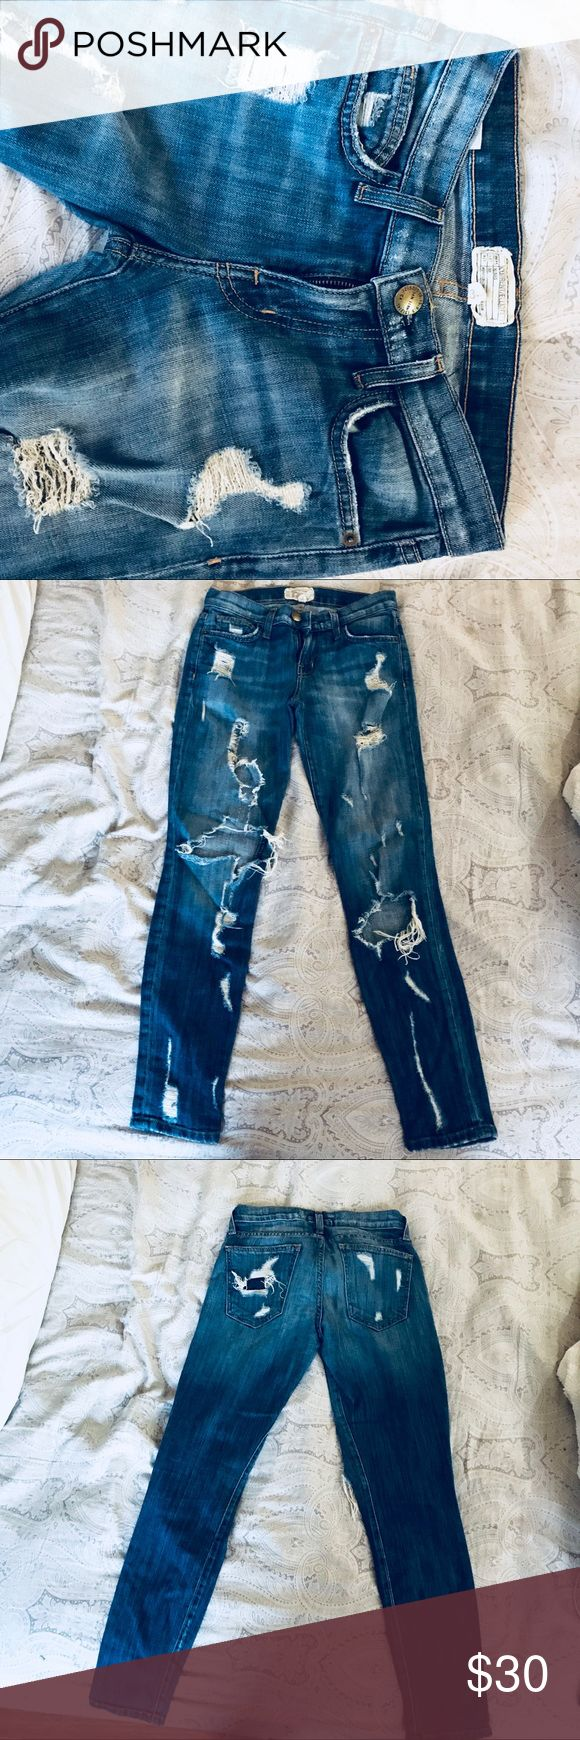 Current/Elliott The Stiletto Jodie Shredded jeans A true eighties skinny that hugs every curve, cropped at the ankle. Show it off with your favorite heels or shoes!   98% Cotton 2% Elastane Current/Elliott Jeans Ankle & Cropped